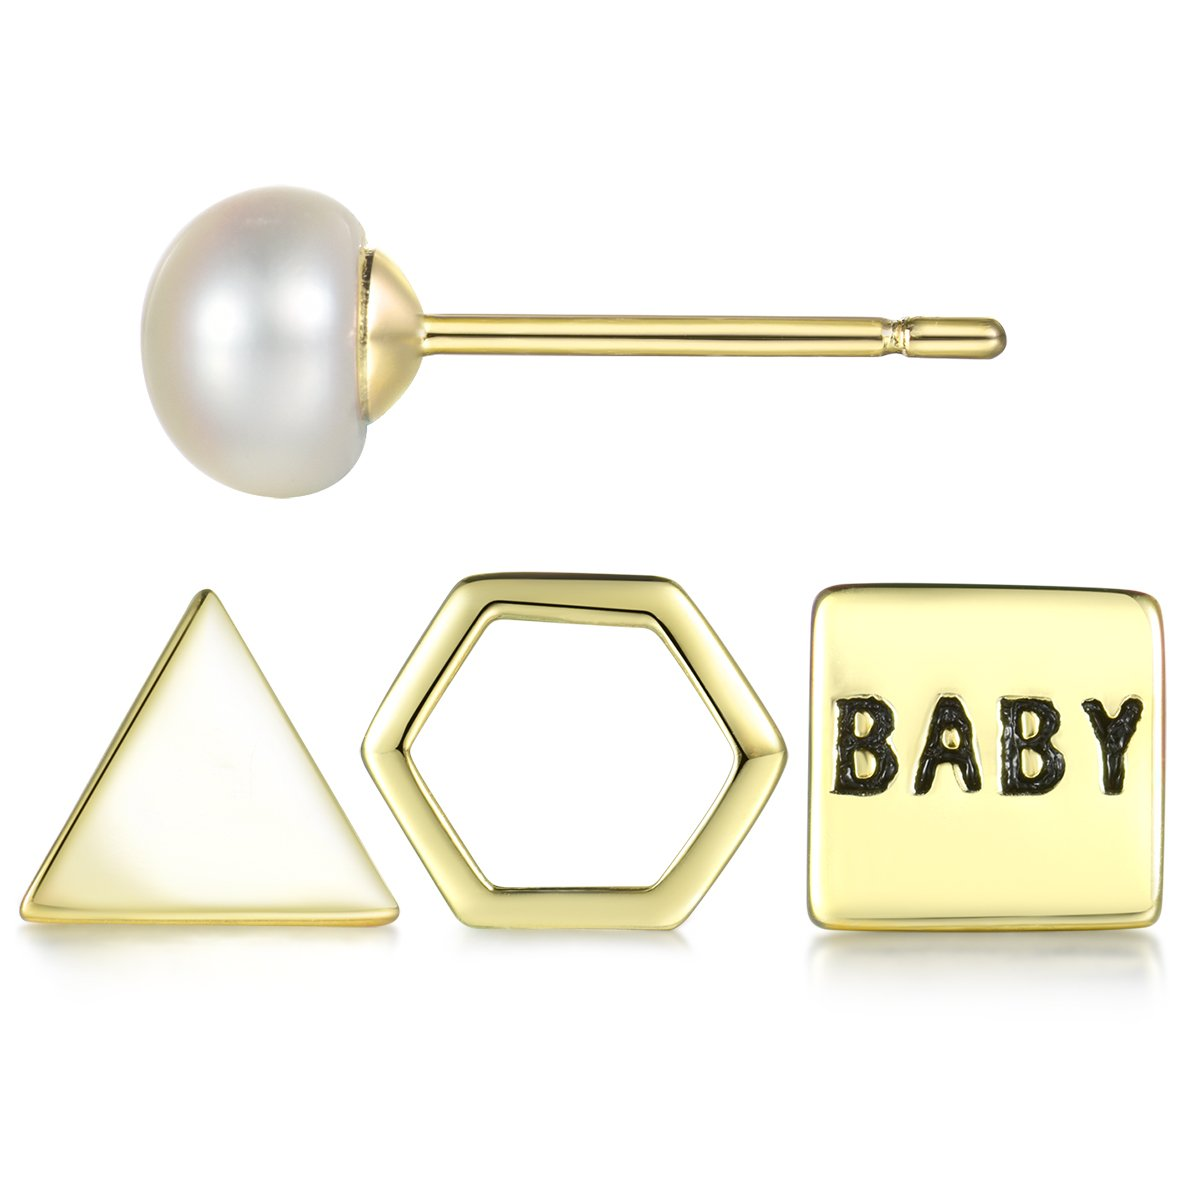 Tiny 925 Sterling Silver Geometric Stud Earrings Set for Cartilage Gold Plated 4 Pieces